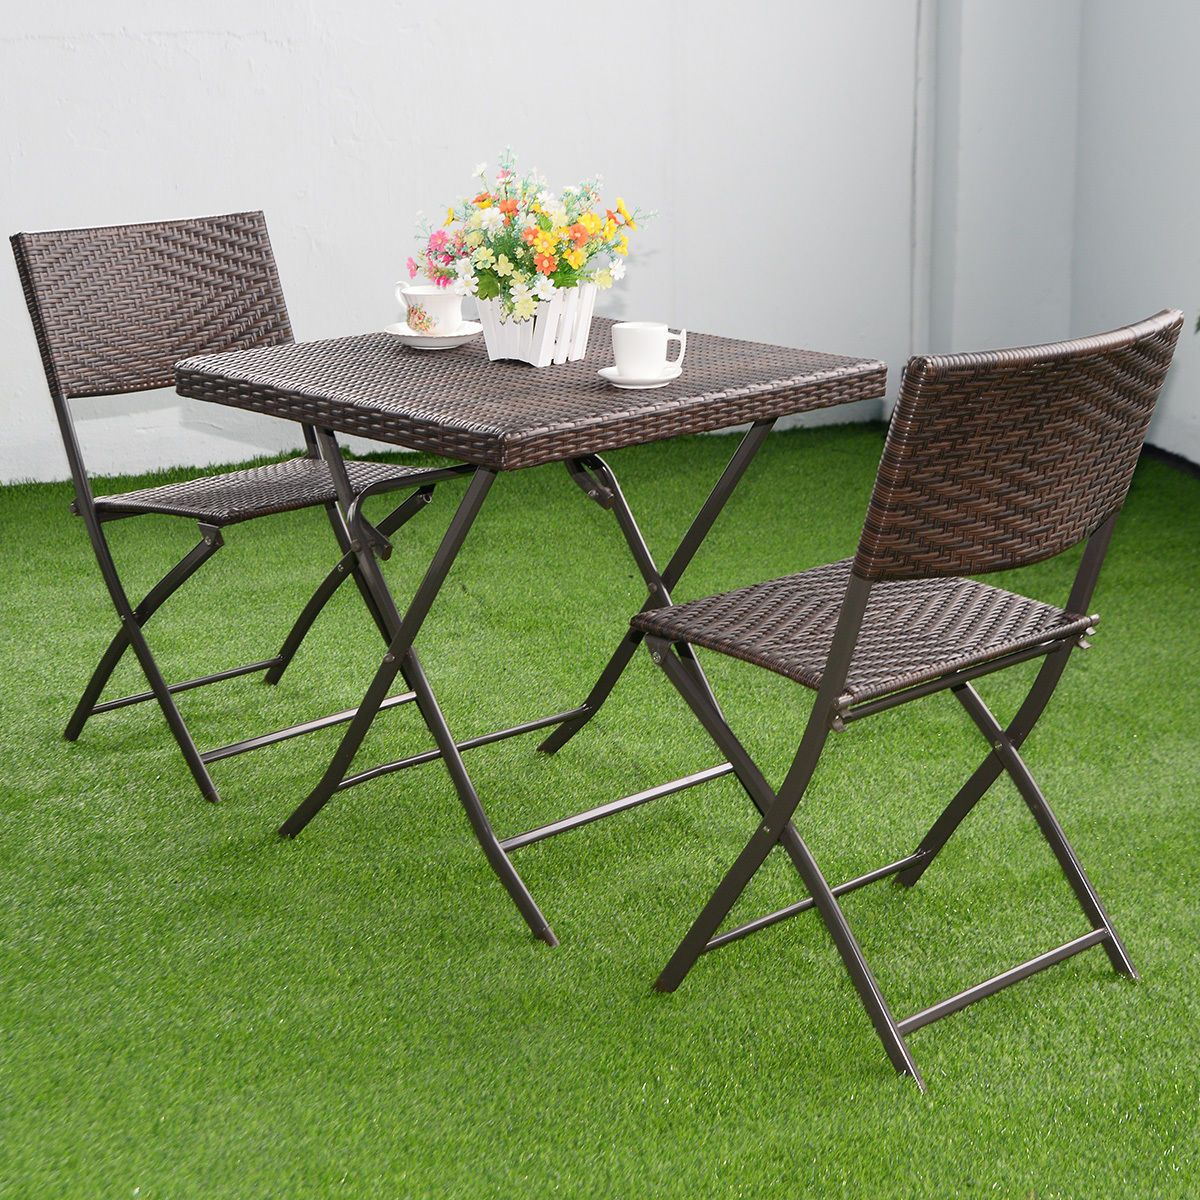 30 Days Presell 3 Pcs Outdoor Folding Table Chairs Set Rattan